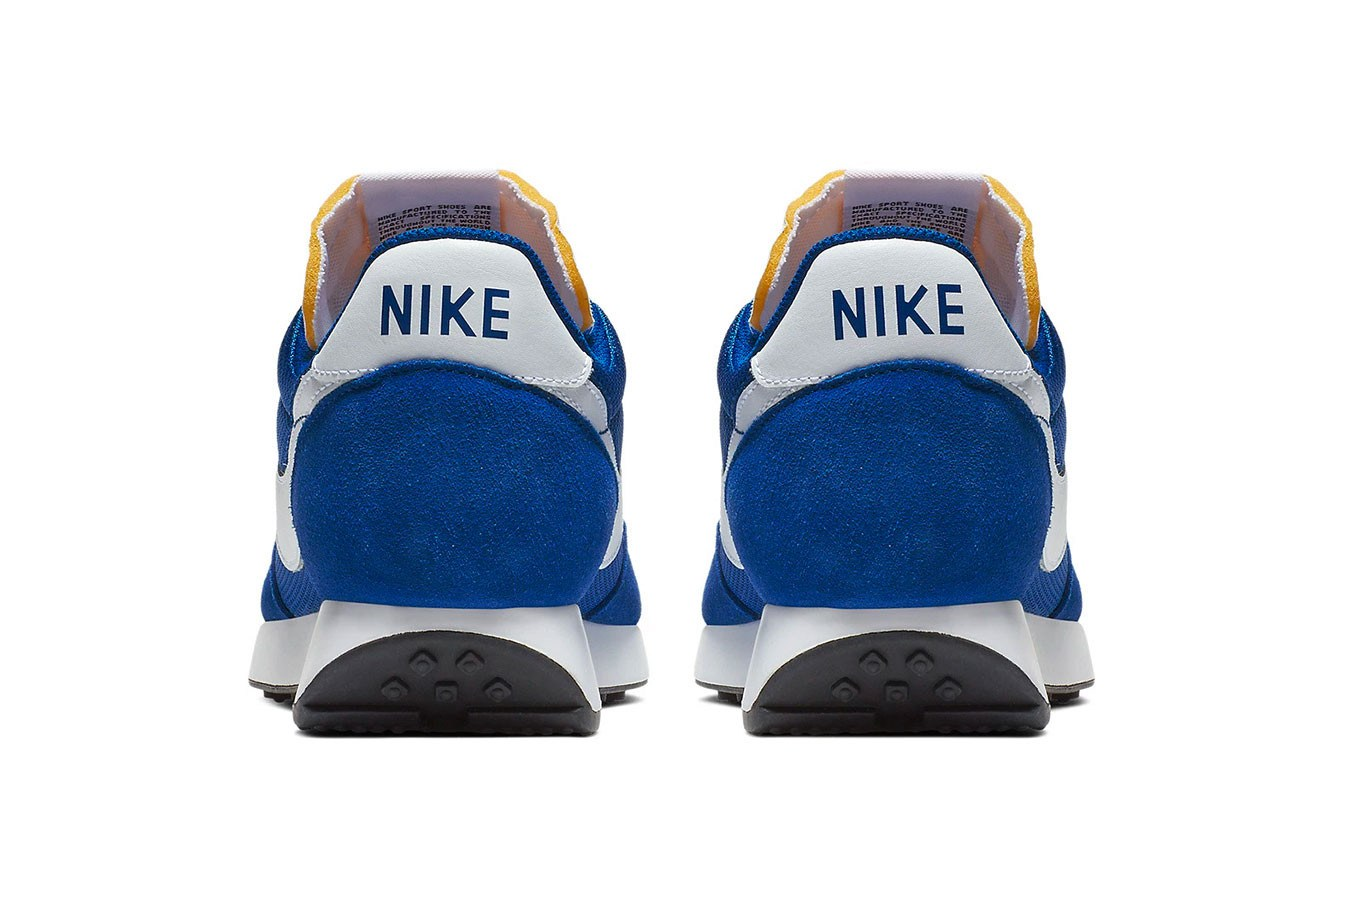 https_2F2Fhypebeast.com2Fimage2F20182F122Fthe-nike-tailwind-79-og-royal-blue-is-.jpg